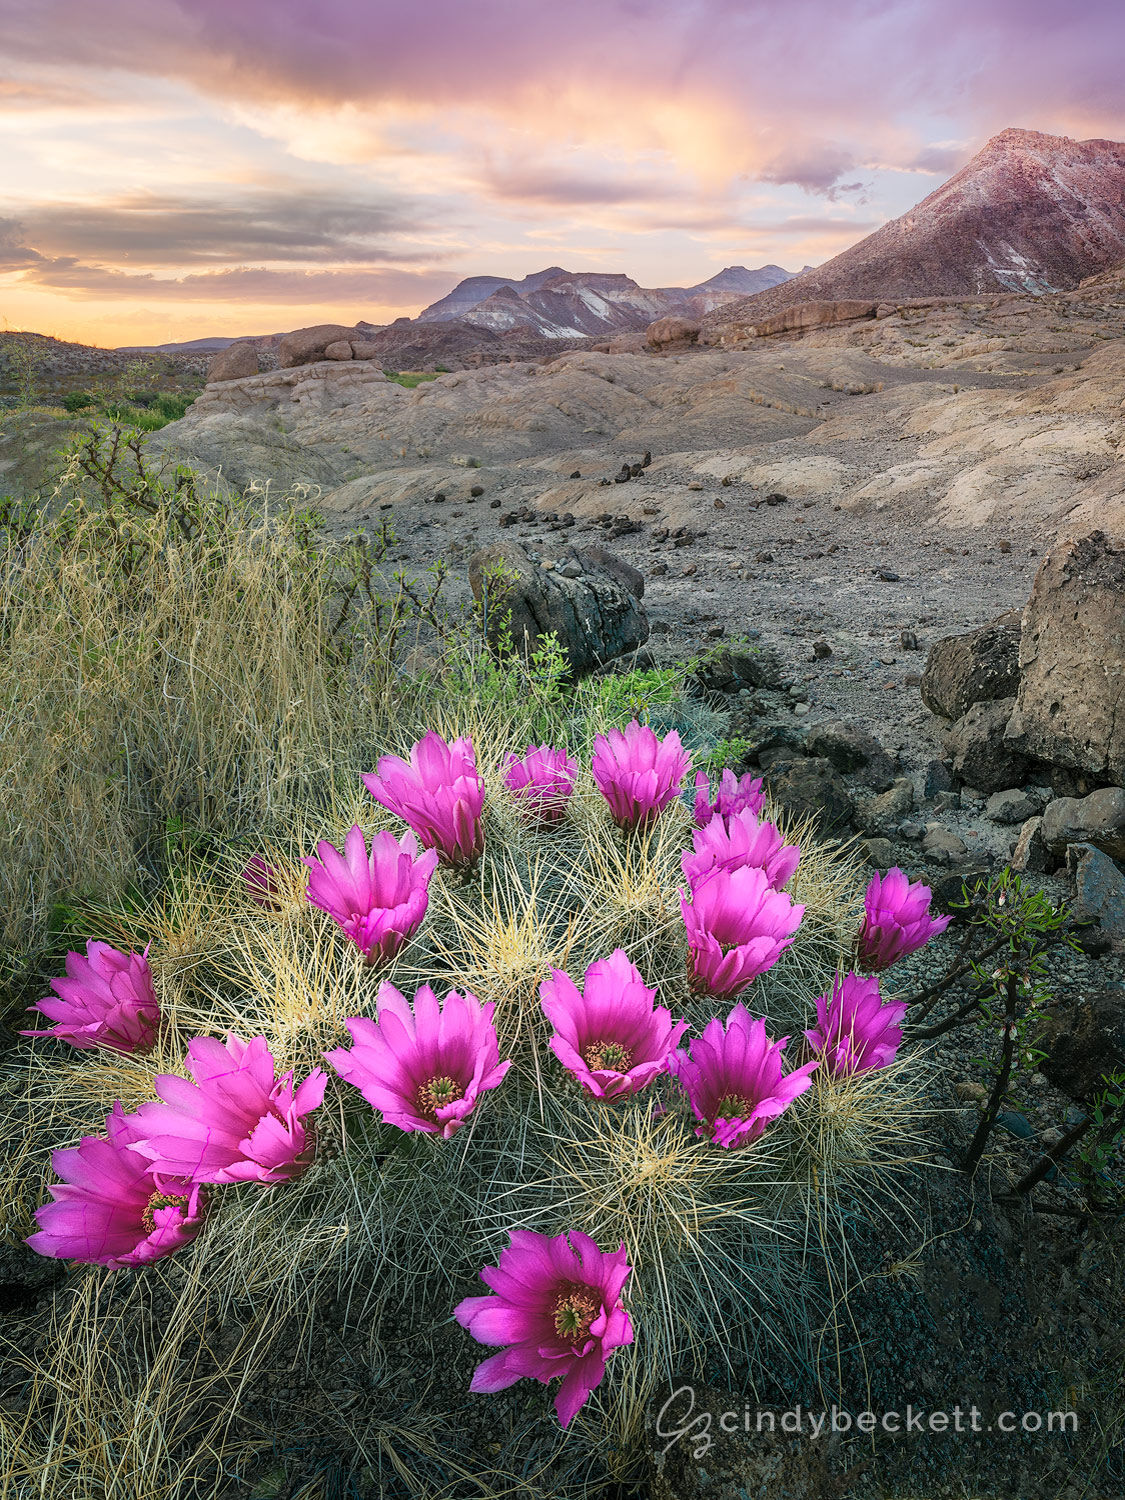 A strawberry hedgehog cactus is in full bloom on the desert hillside in the Rio Grande river canyon. Twilight shows on clouds and mountains behind the scene